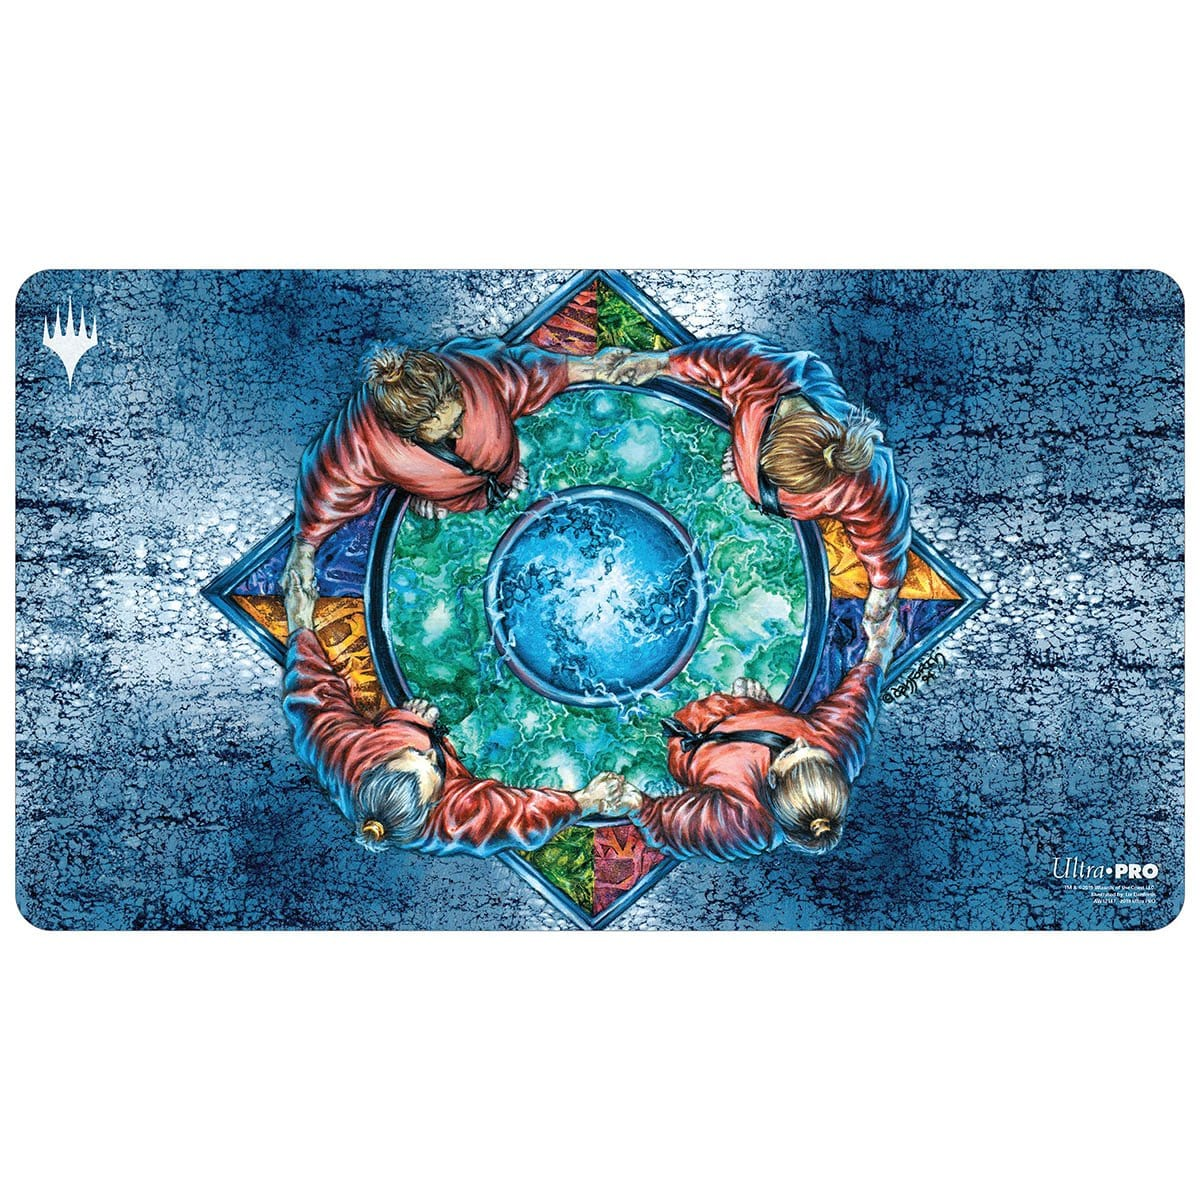 Hymn to Tourach Playmat - Playmat - Original Magic Art - Accessories for Magic the Gathering and other card games